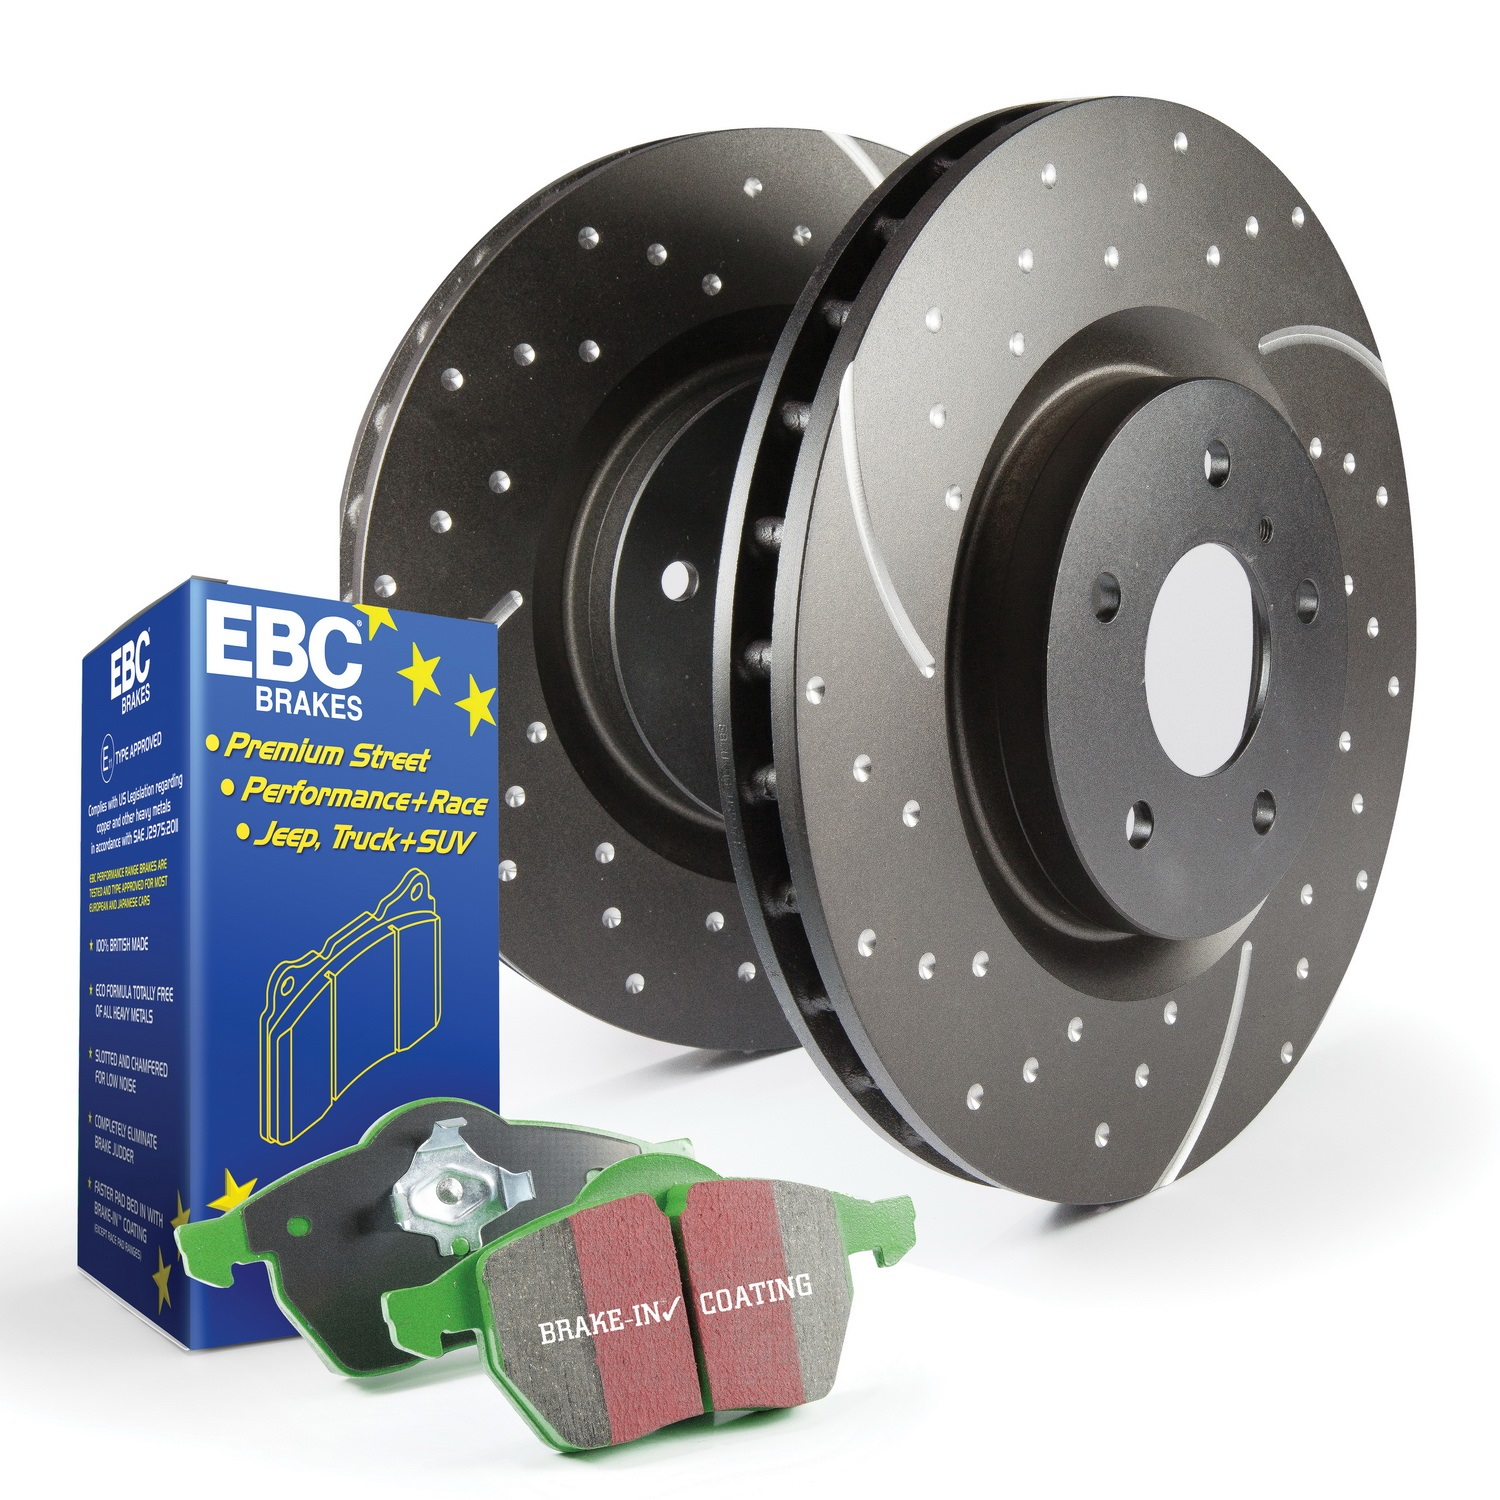 EBC Brakes S3KR1112 S3 Kits Greenstuff 6000 and GD Rotors Truck and SUV